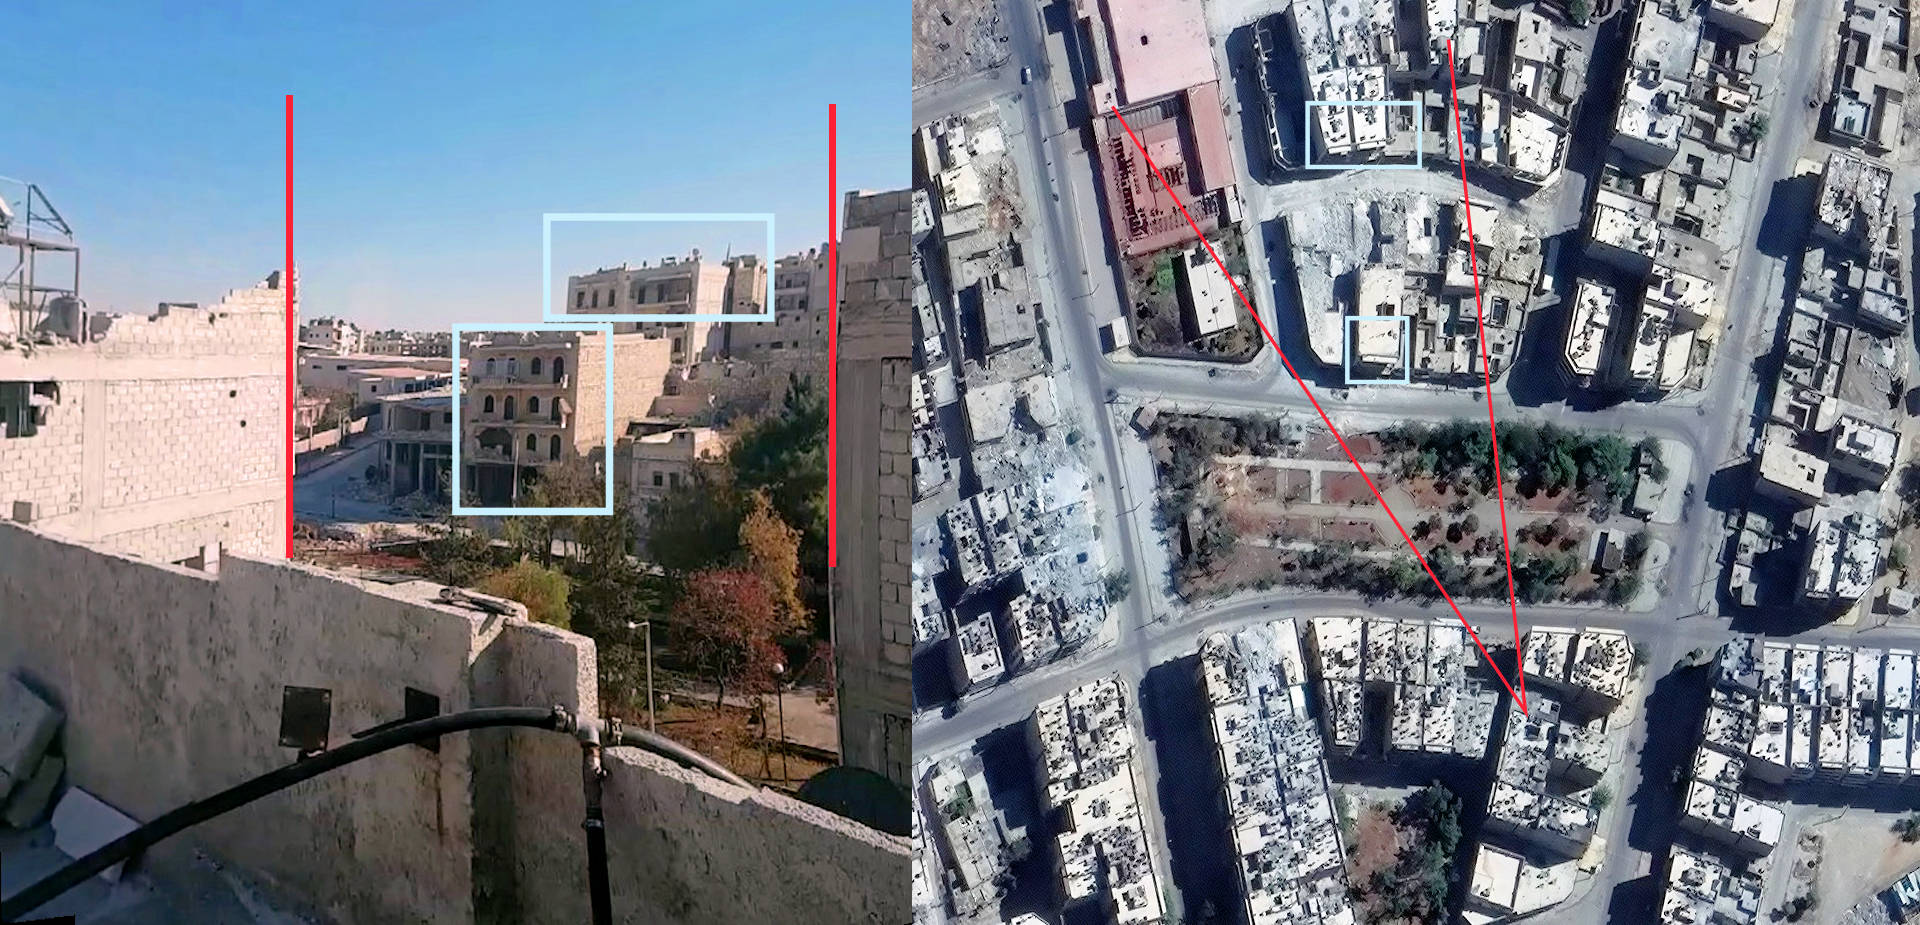 Image 4: Geolocation of Bana's house using a still from a Periscope video